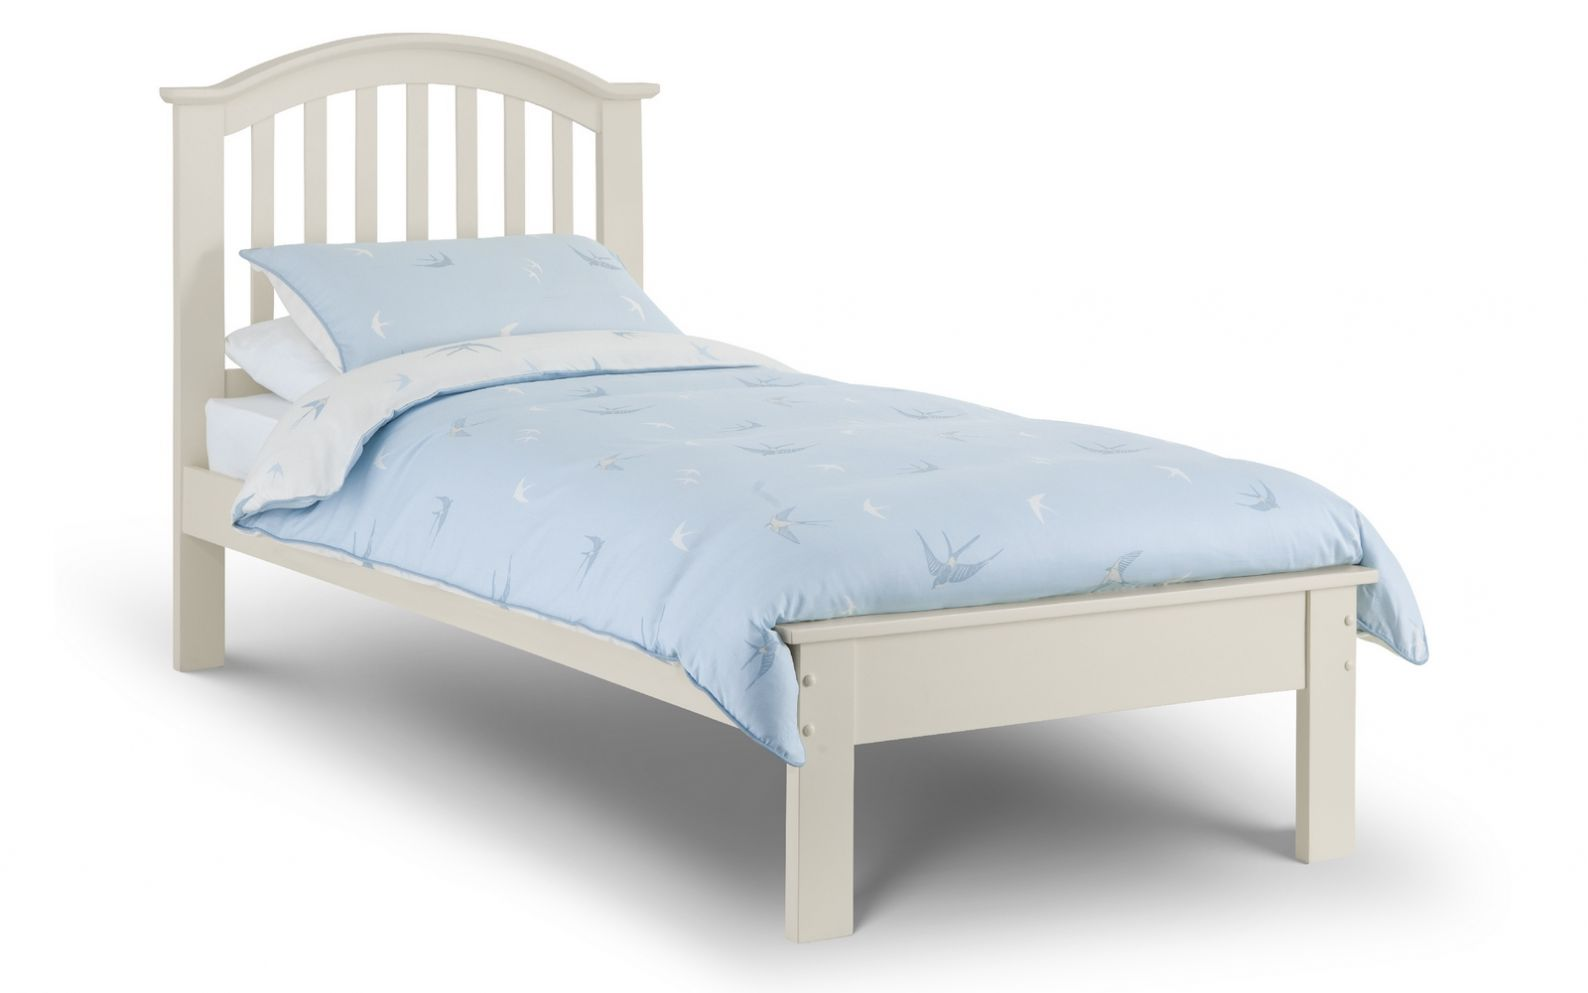 pullout bed beds single in trundle and with day under grey image drawers loki